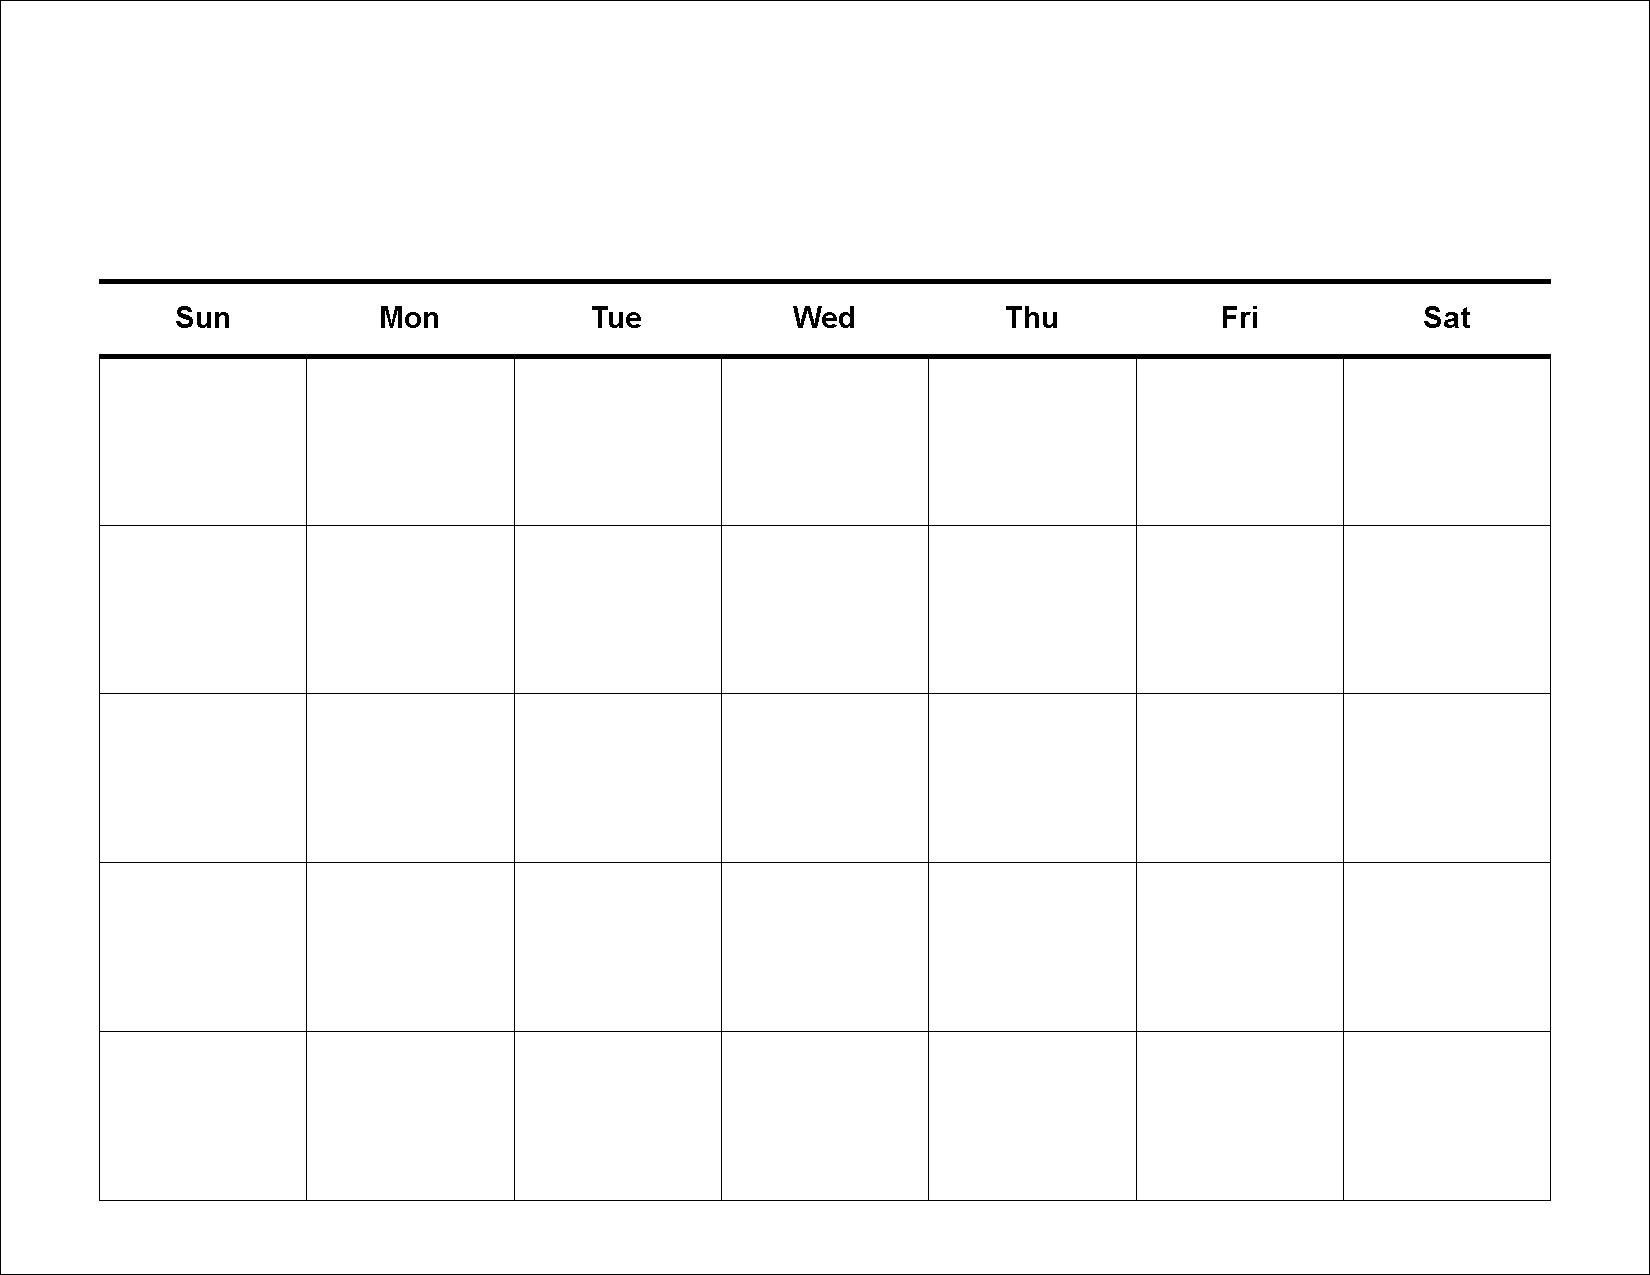 Printable Calendar Grid Leonescapersco Free 2 Week Blank throughout 3 Week Blank Calendar